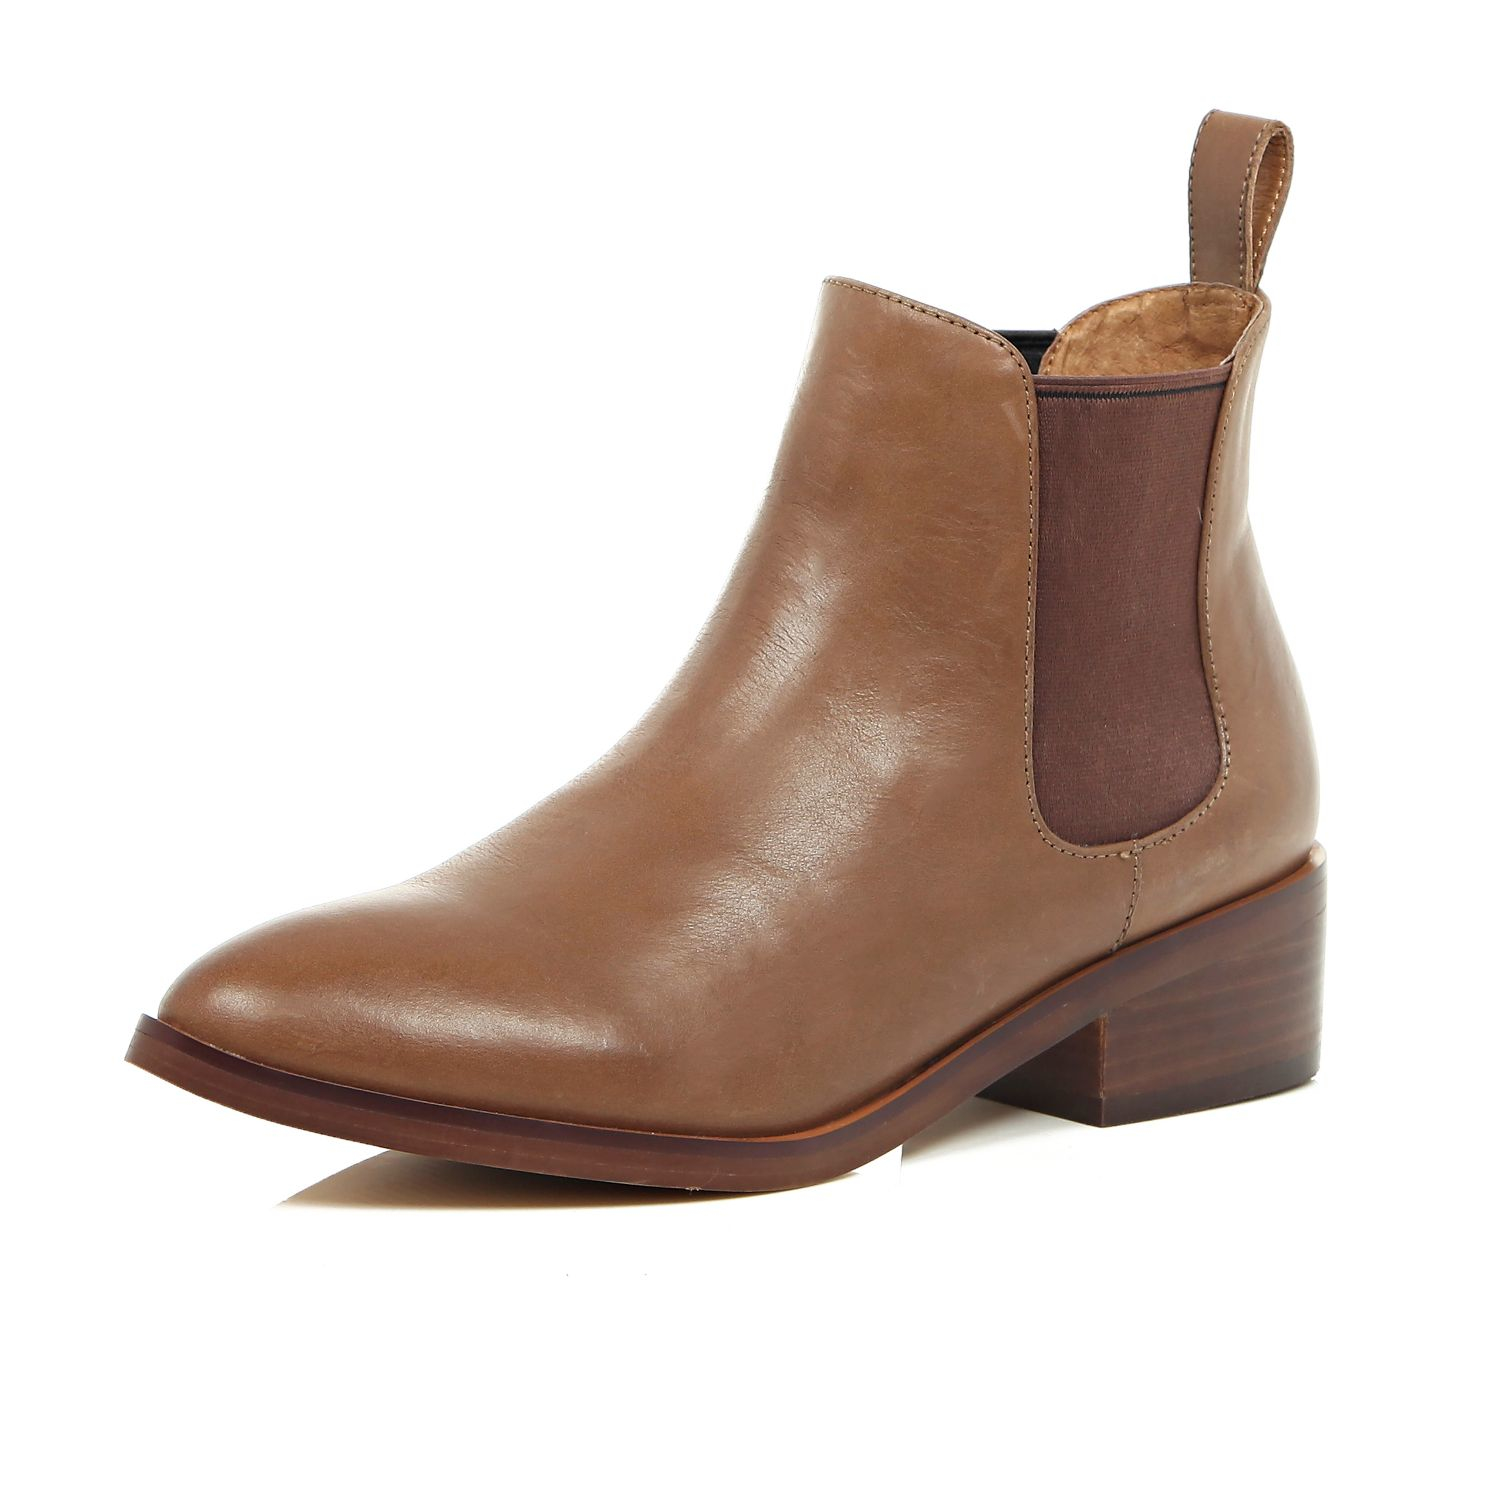 These leather boots are made to order from high quality soft leather. Inspired by classical and clean style of Chelsea boot these shoes were designed to become a staple in your wardrobe. Crafted from high quality leather and feature elasticated sides and a heel loop tab for easy foot entry/5(K).